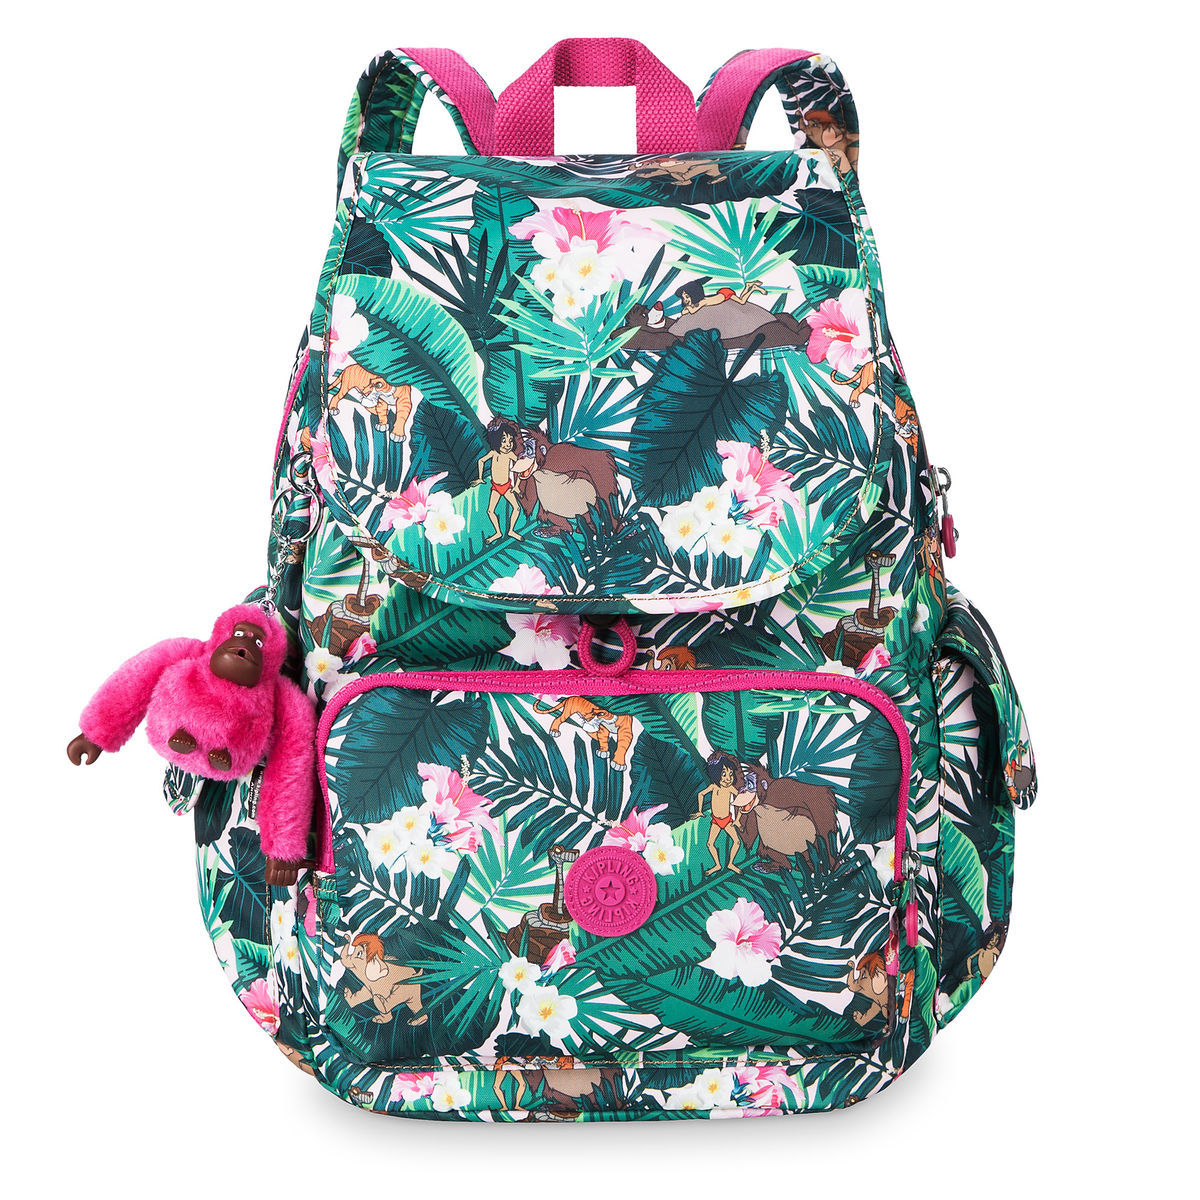 Product Image Of Jungle Book City Pack Backpack By Kipling 1